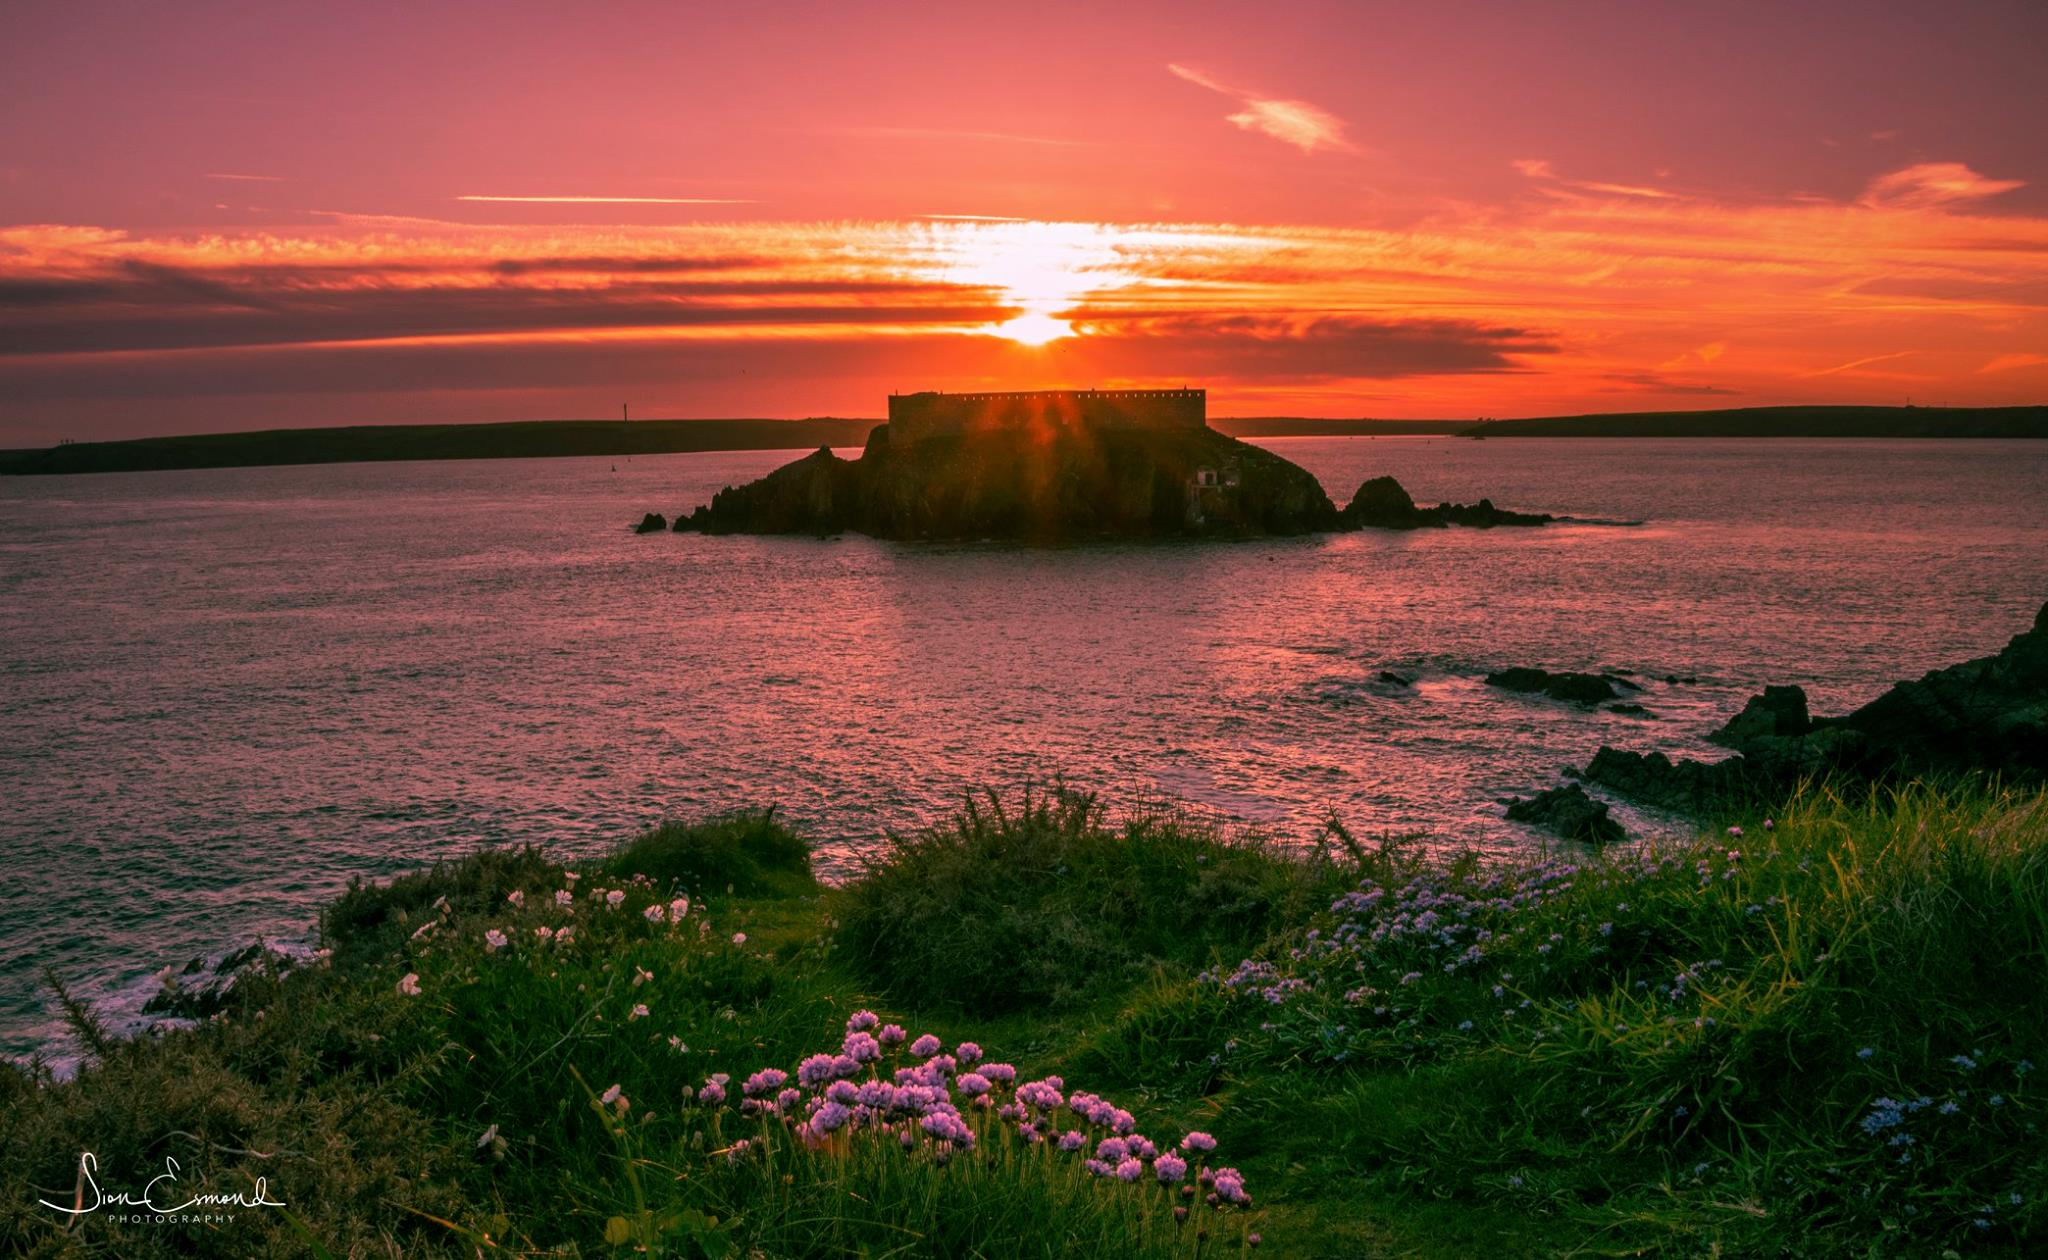 Today's Western Telegraph Camera Club Picture of the Day was taken of this amazing sunset over Thorne Island.